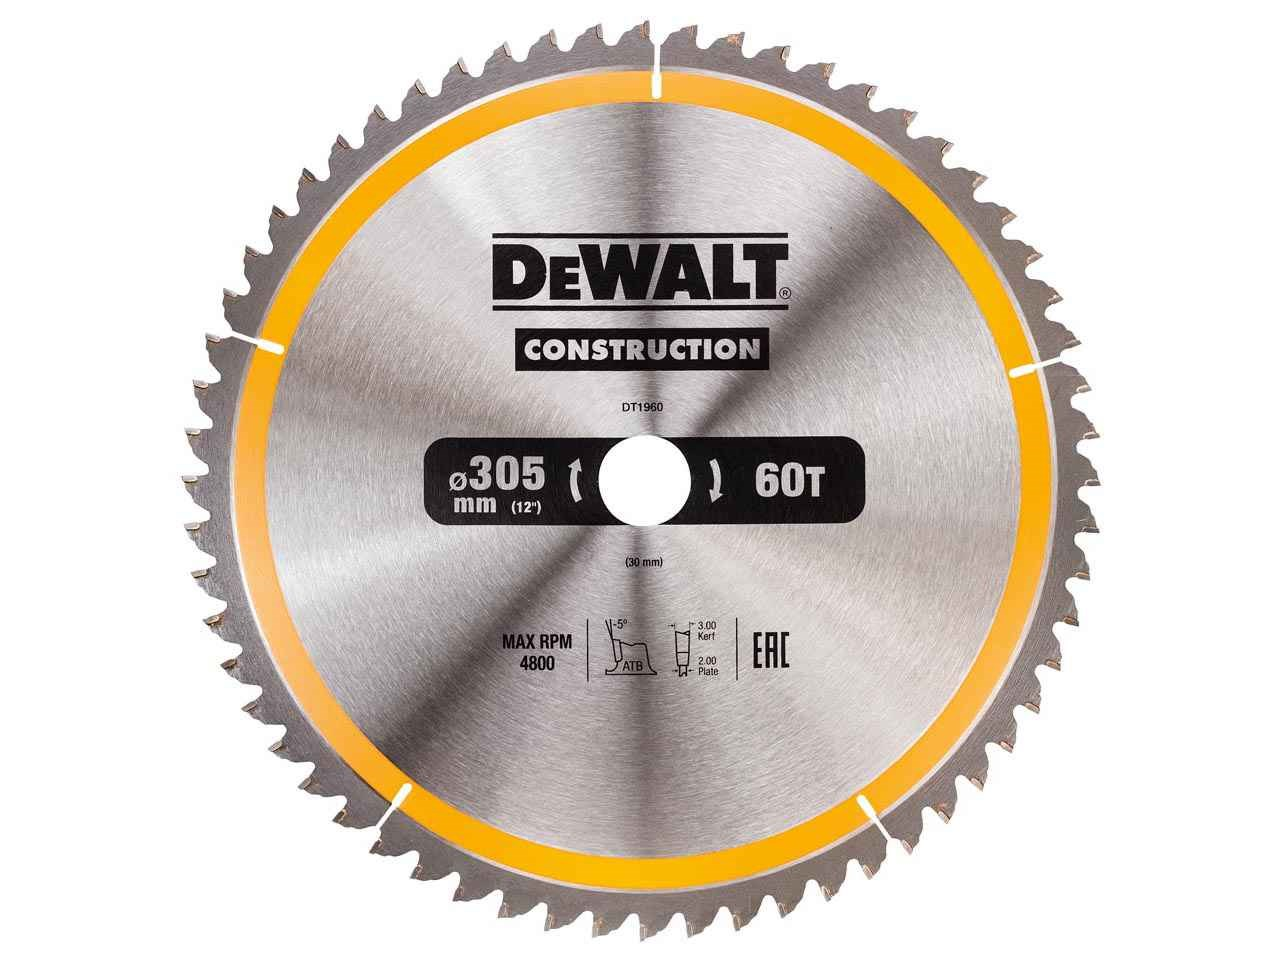 Dewalt dt1960qz construction circular saw blade 305x30mm 60t greentooth Choice Image